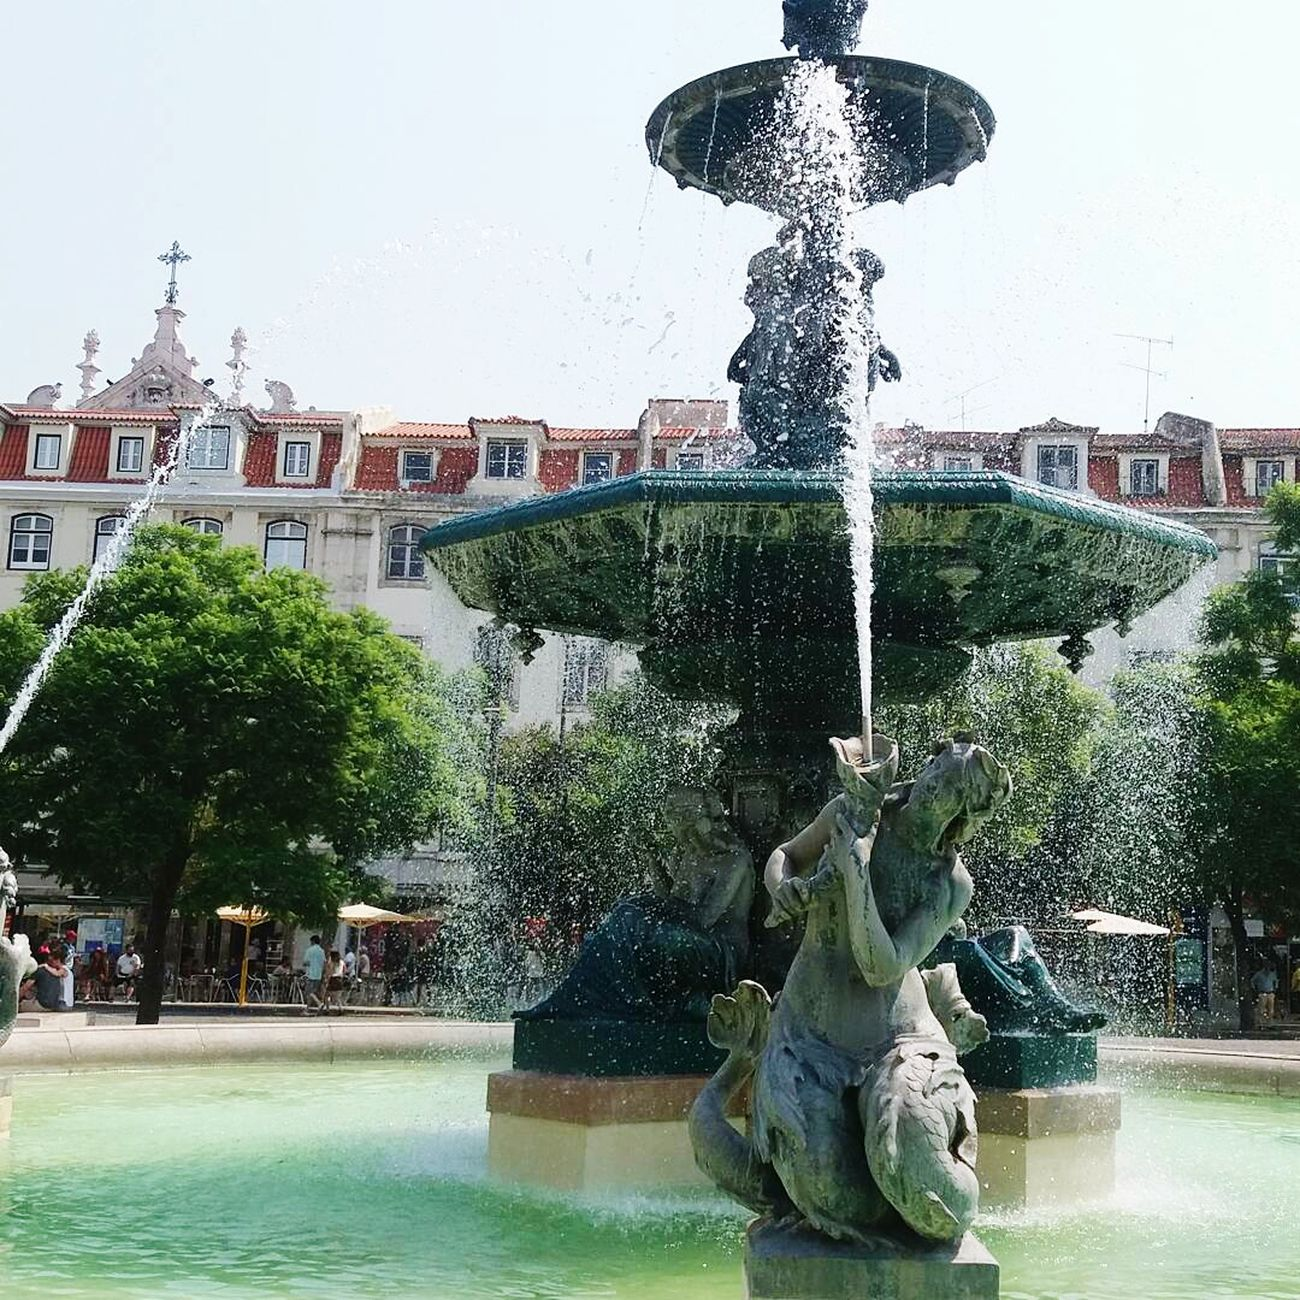 Praca do rossio lisboa Statue Sculpture Fountain Water Motion Spraying Travel Destinations Photographing Exterior Lisbon Portugal Photography City Scenics Casualphotography Colour Patterns Lisboa, Portugal